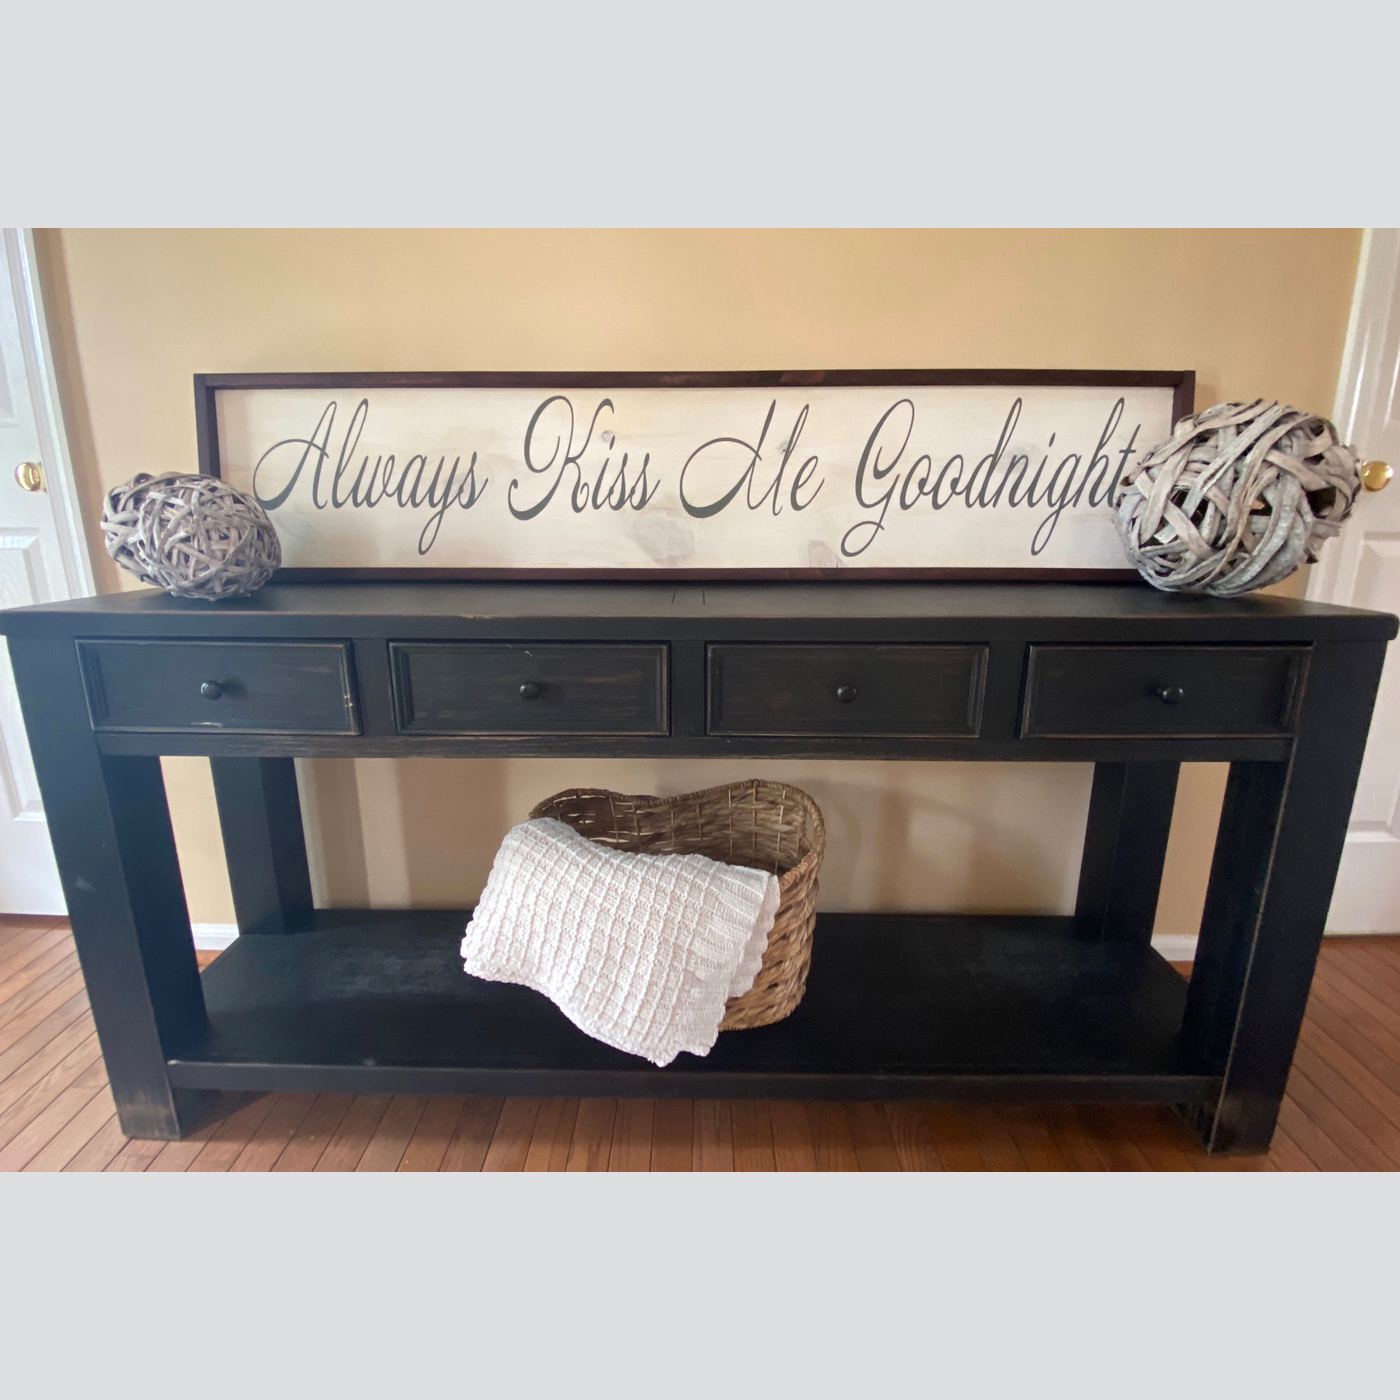 Always Kiss Me Goodnight Framed DIY wood sign